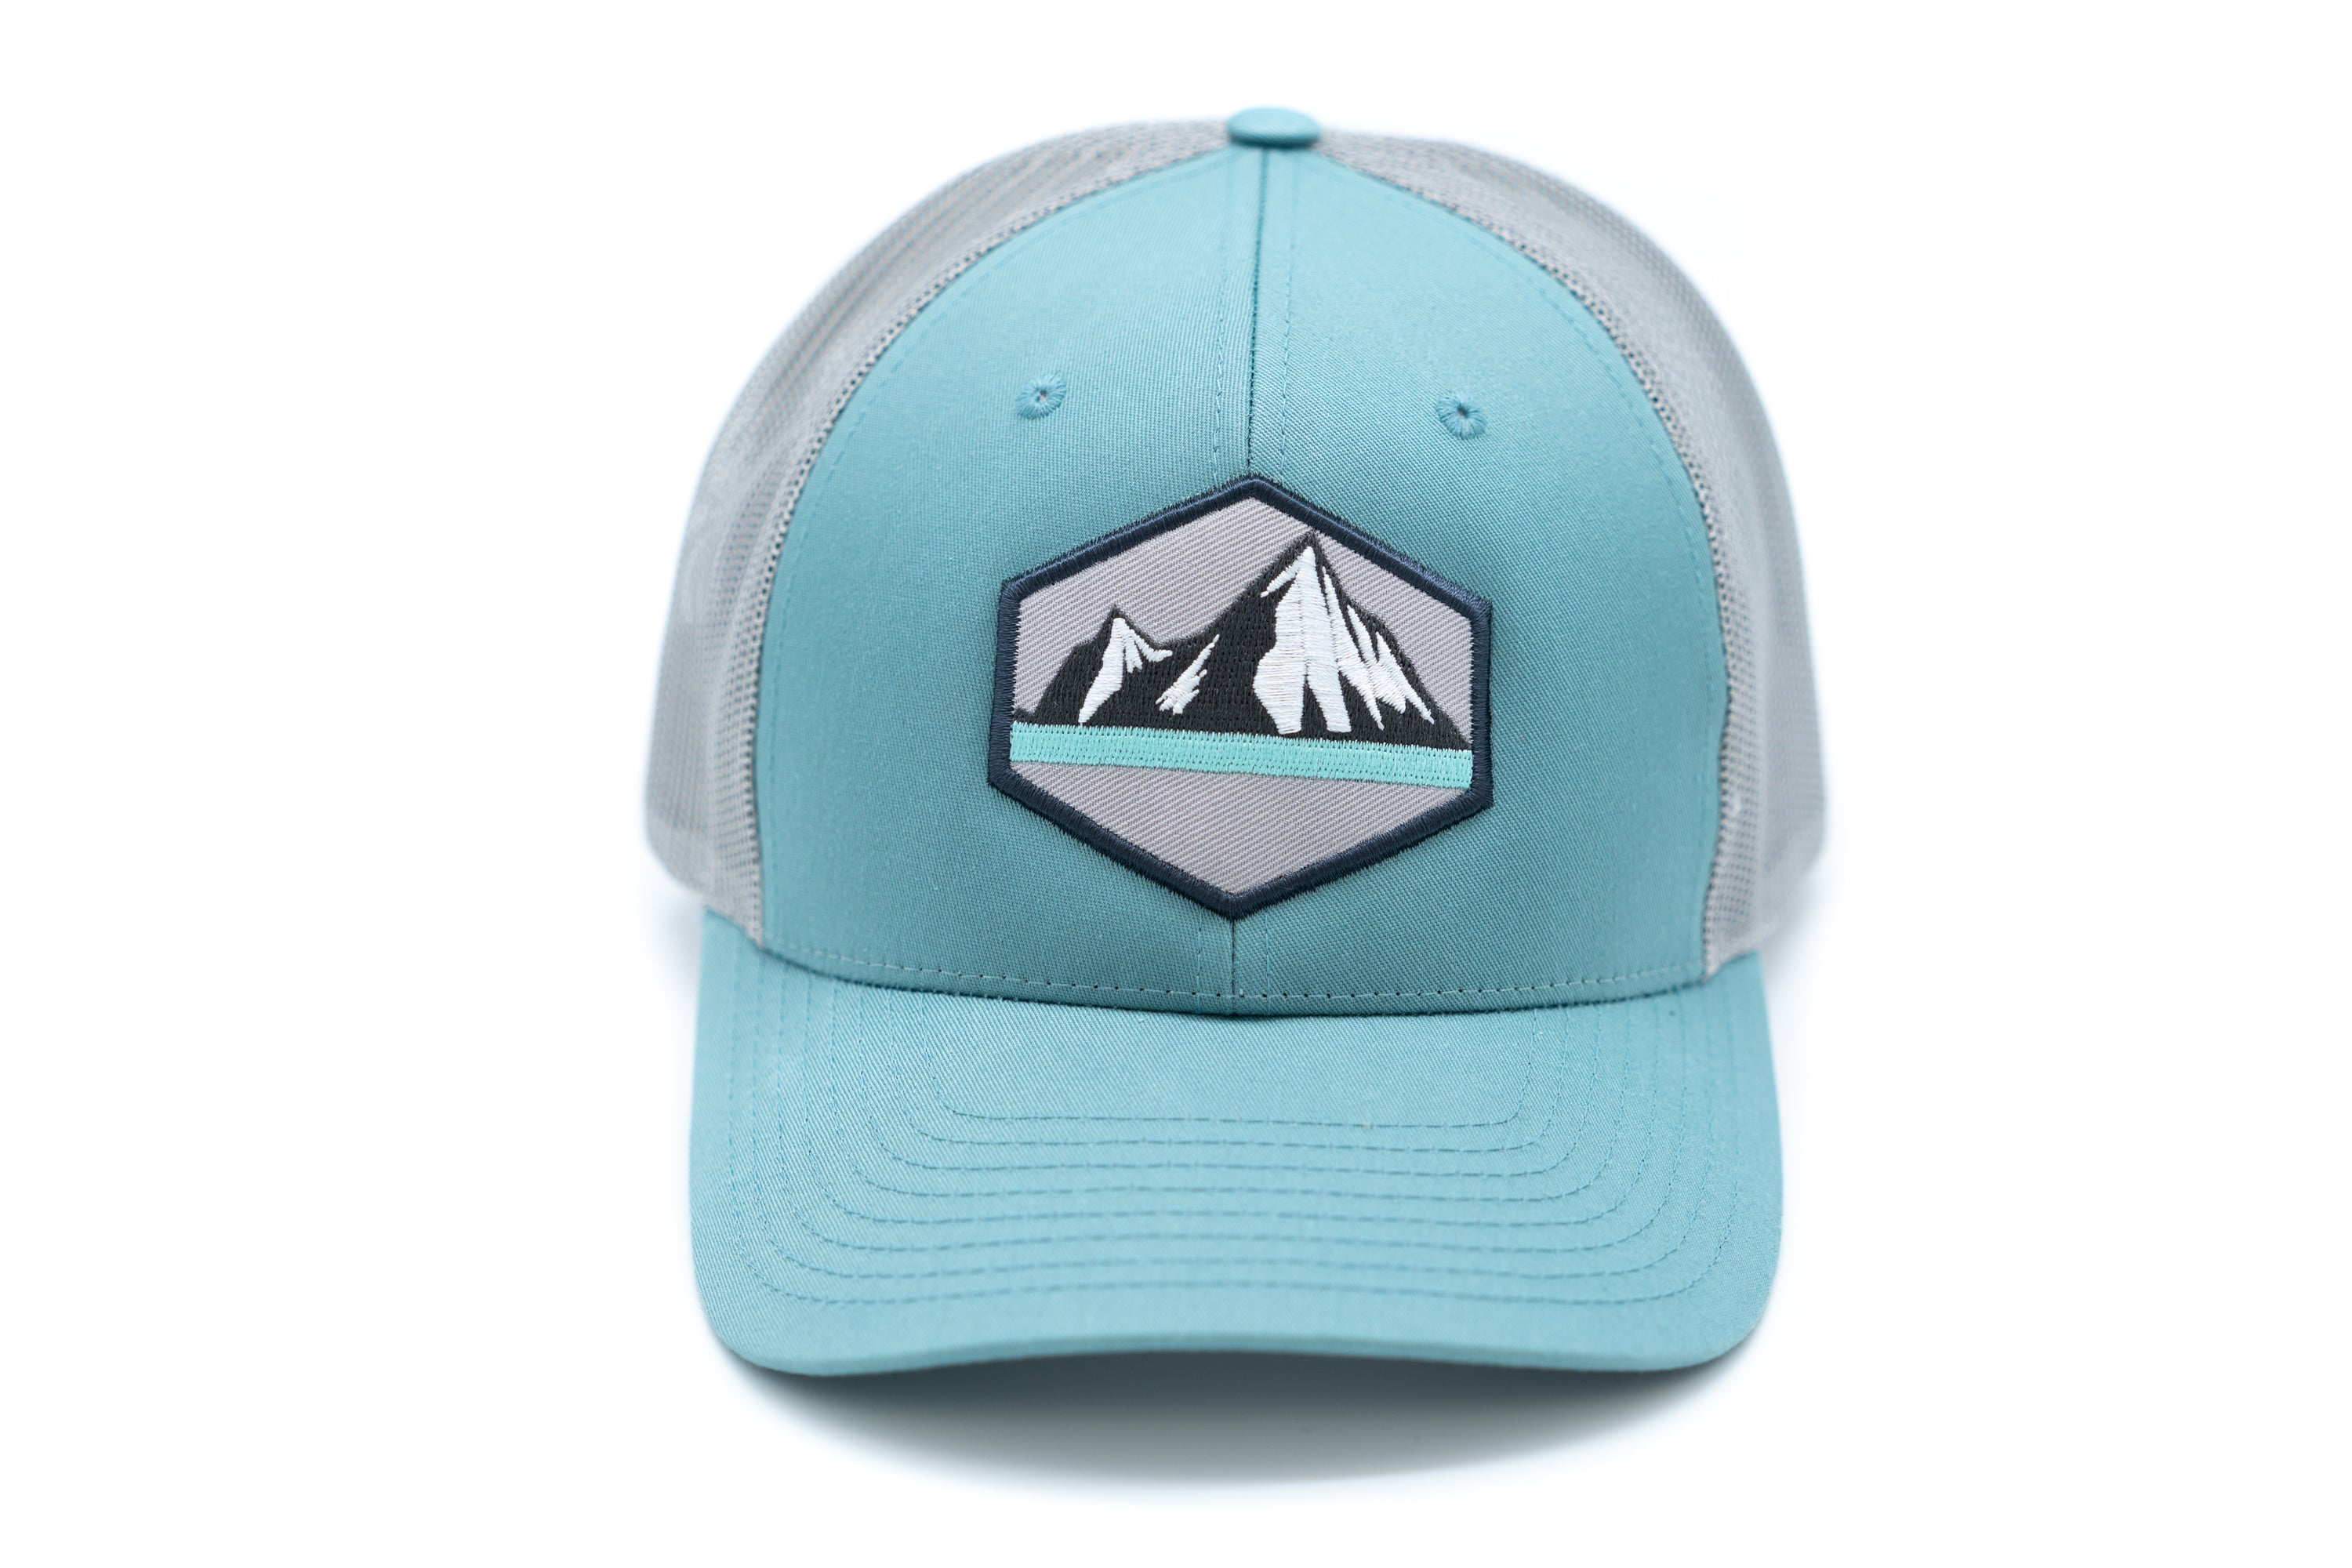 Low Profile Snapback Trucker Patch Hat - Aqua/Grey